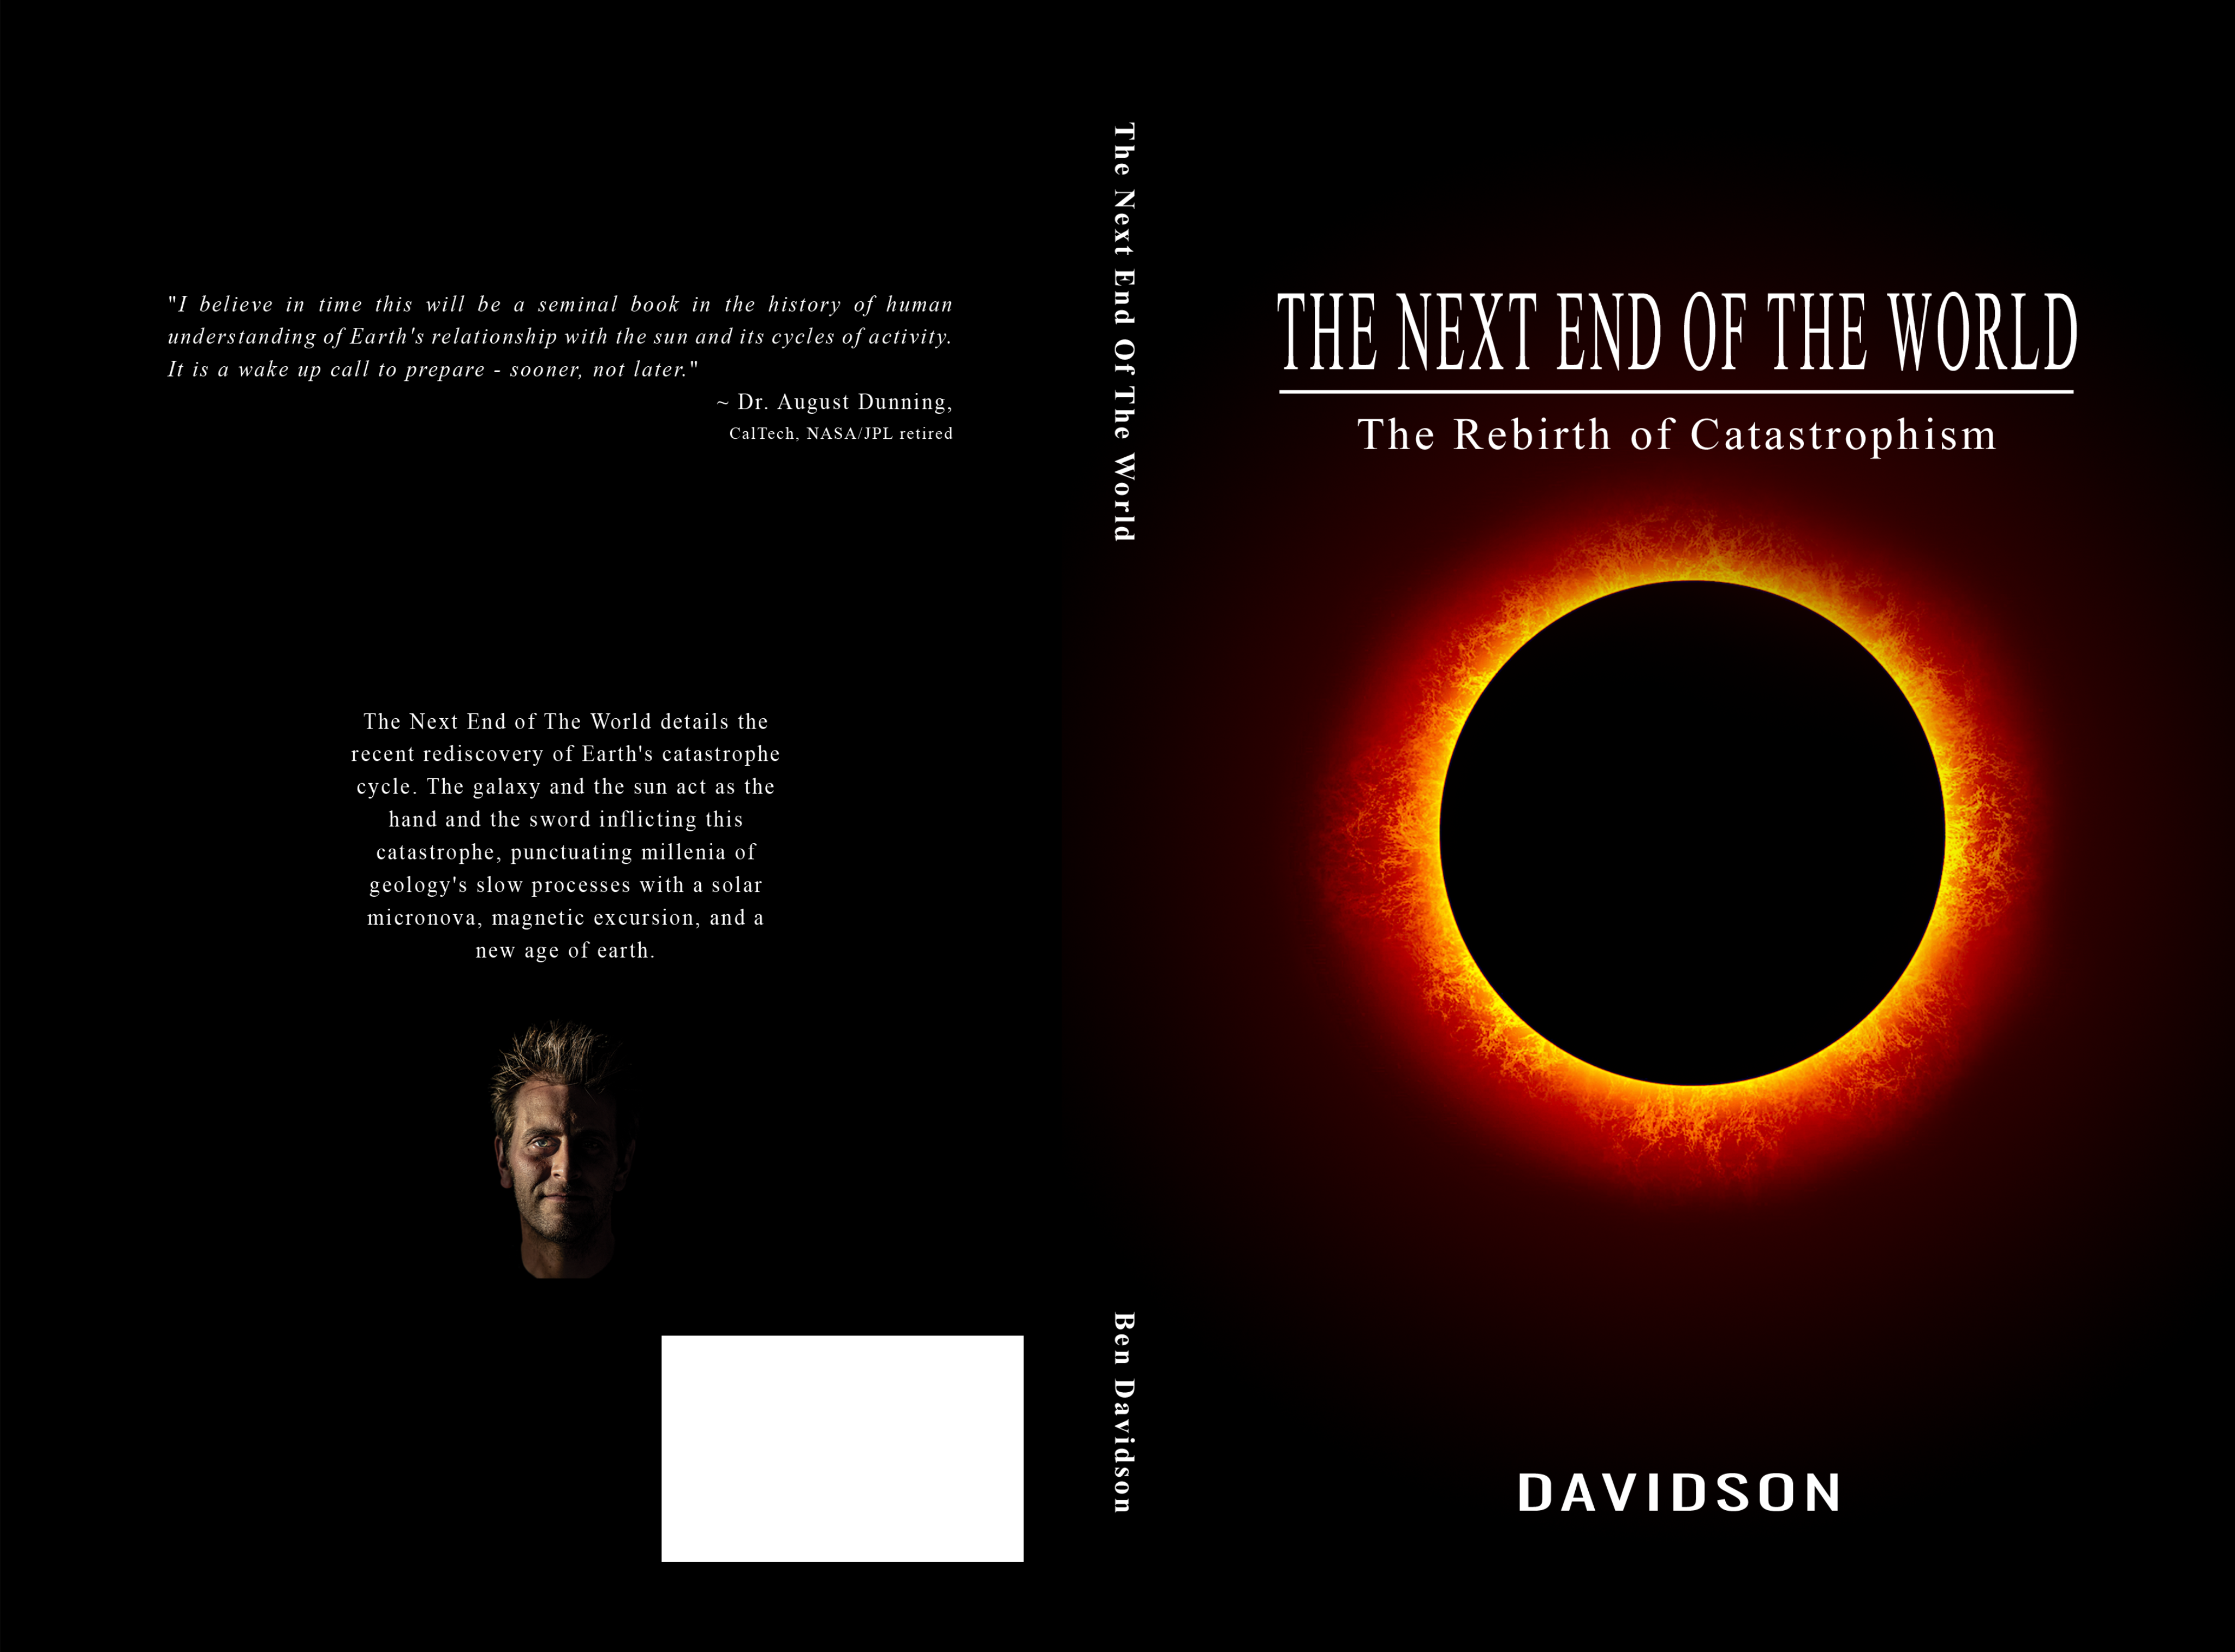 PDF - The Next End of the World: The Rebirth of Catastrophism